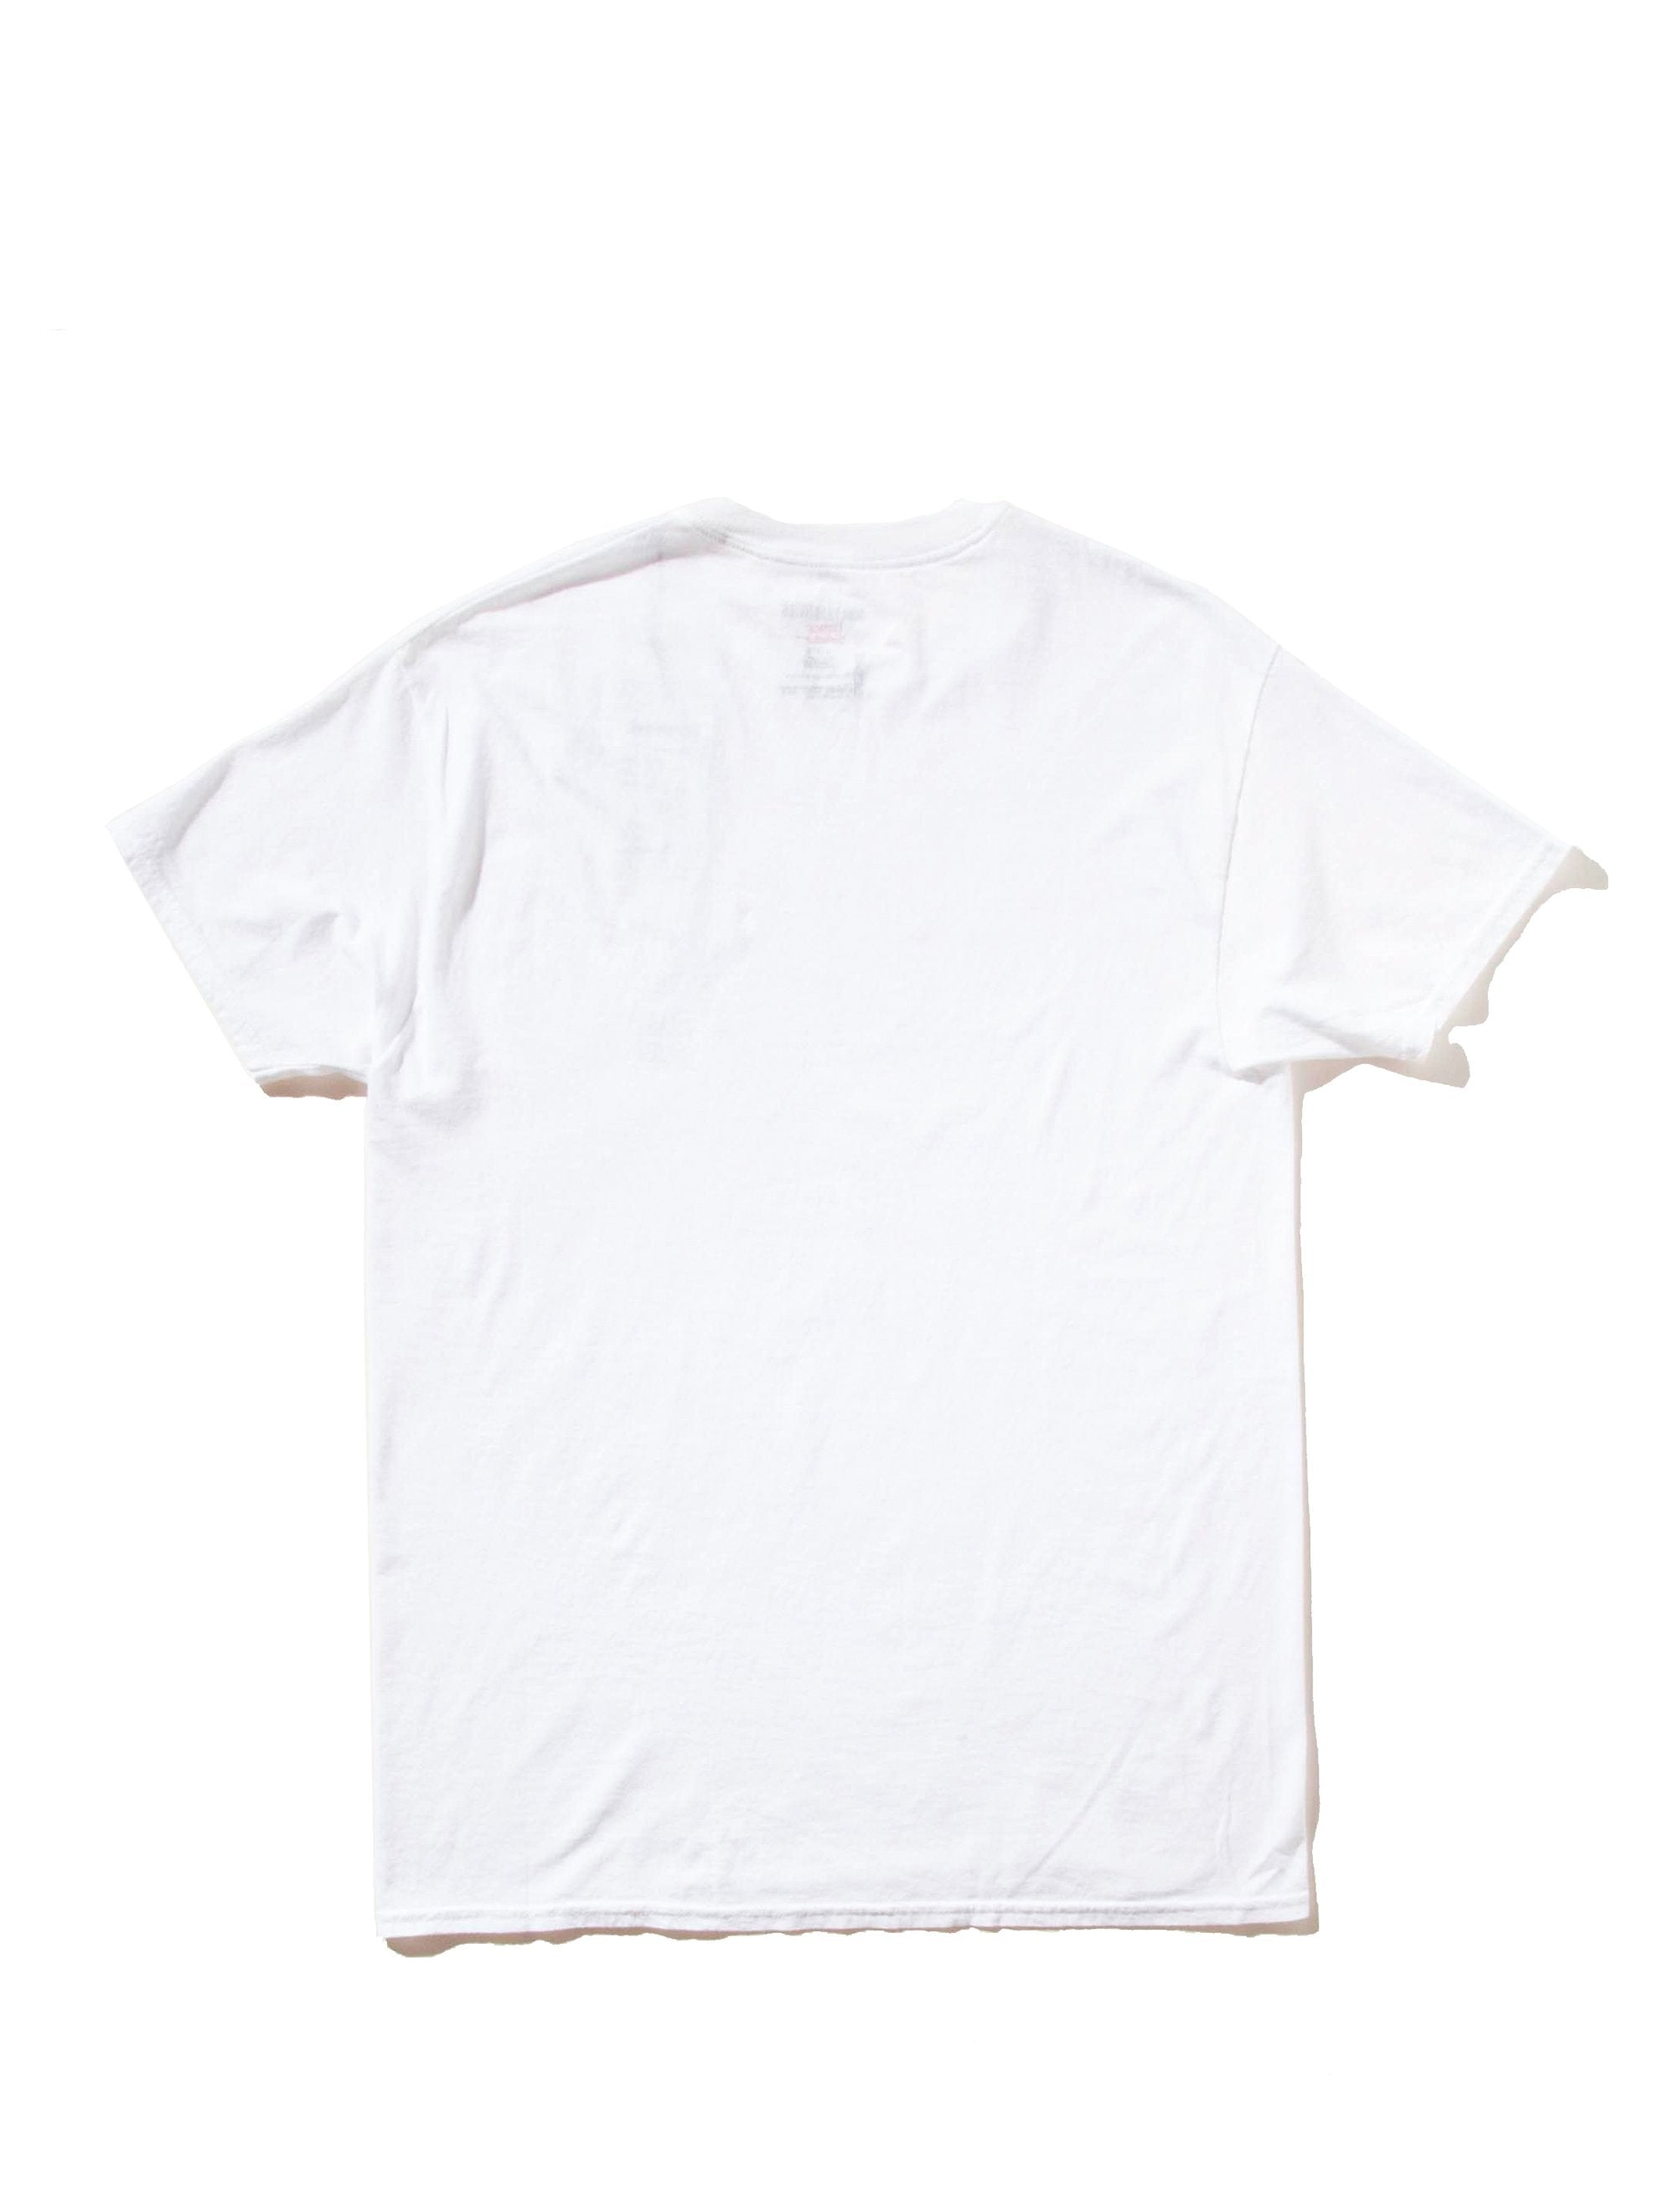 White Souvenior Crew Neck T-Shirt (Type 5) 6